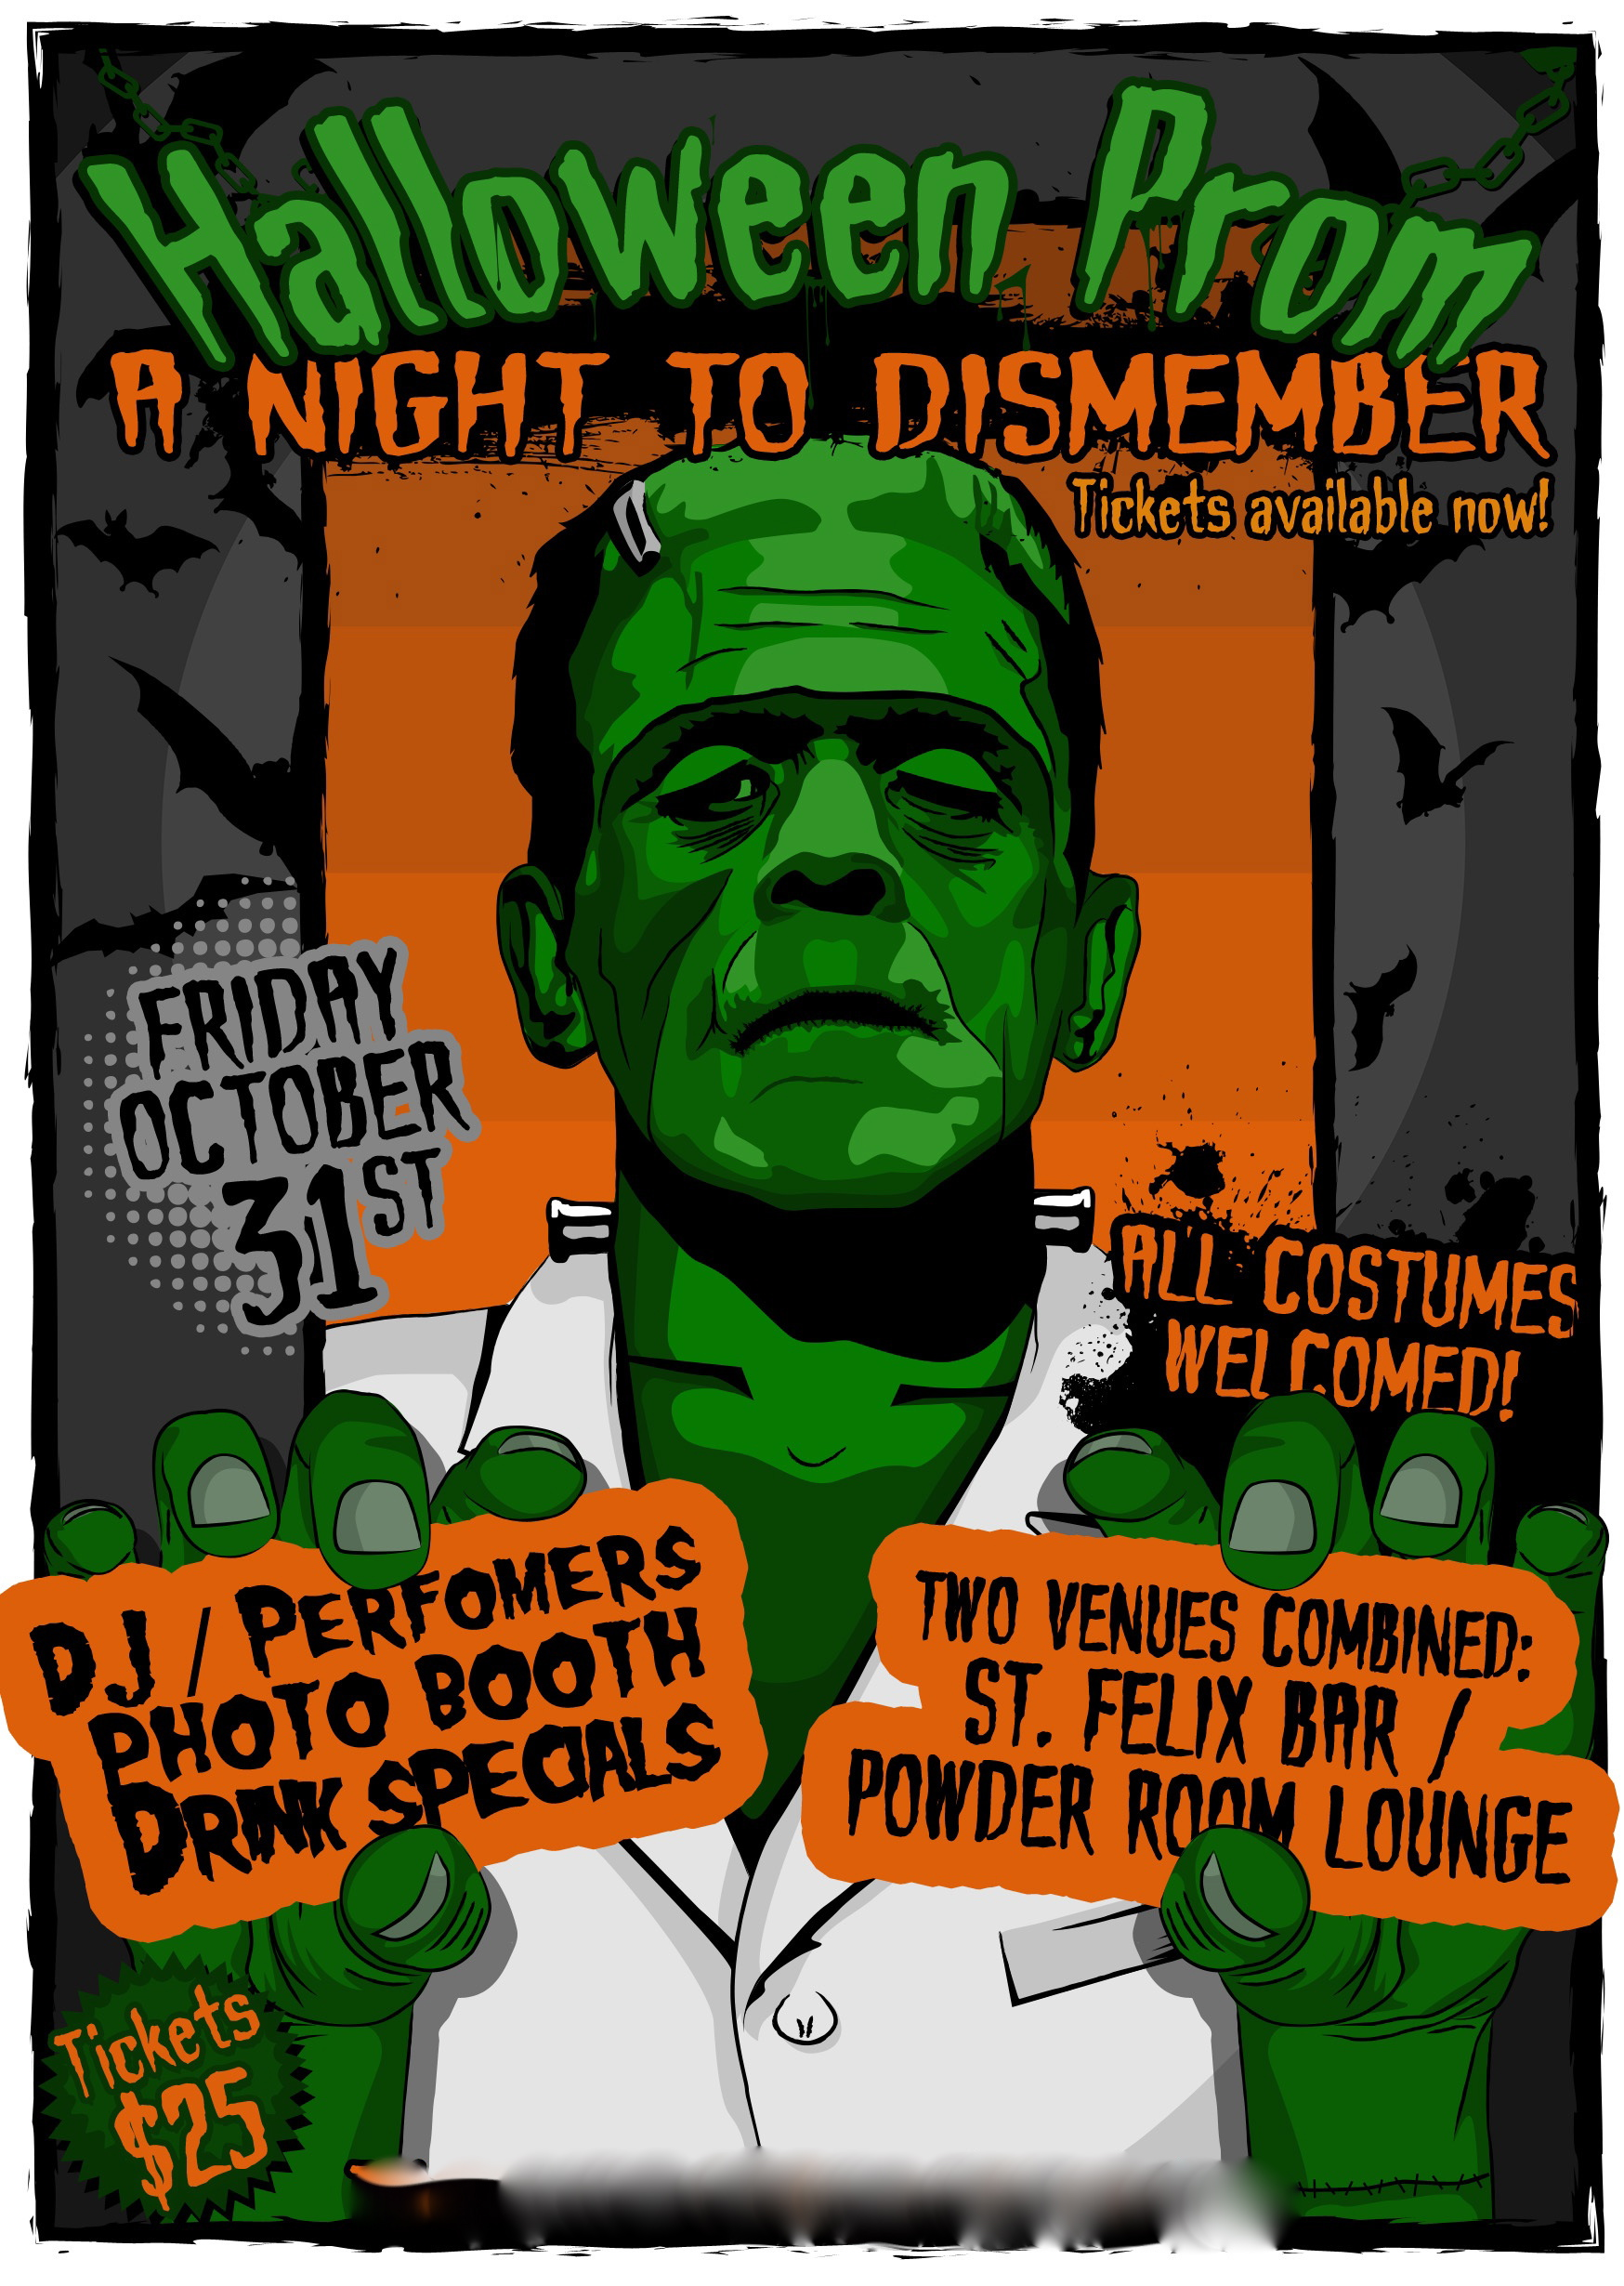 HALLOWEEN PROM | ST. FELIX & POWDER ROOM | FRI OCT 31 | 21+